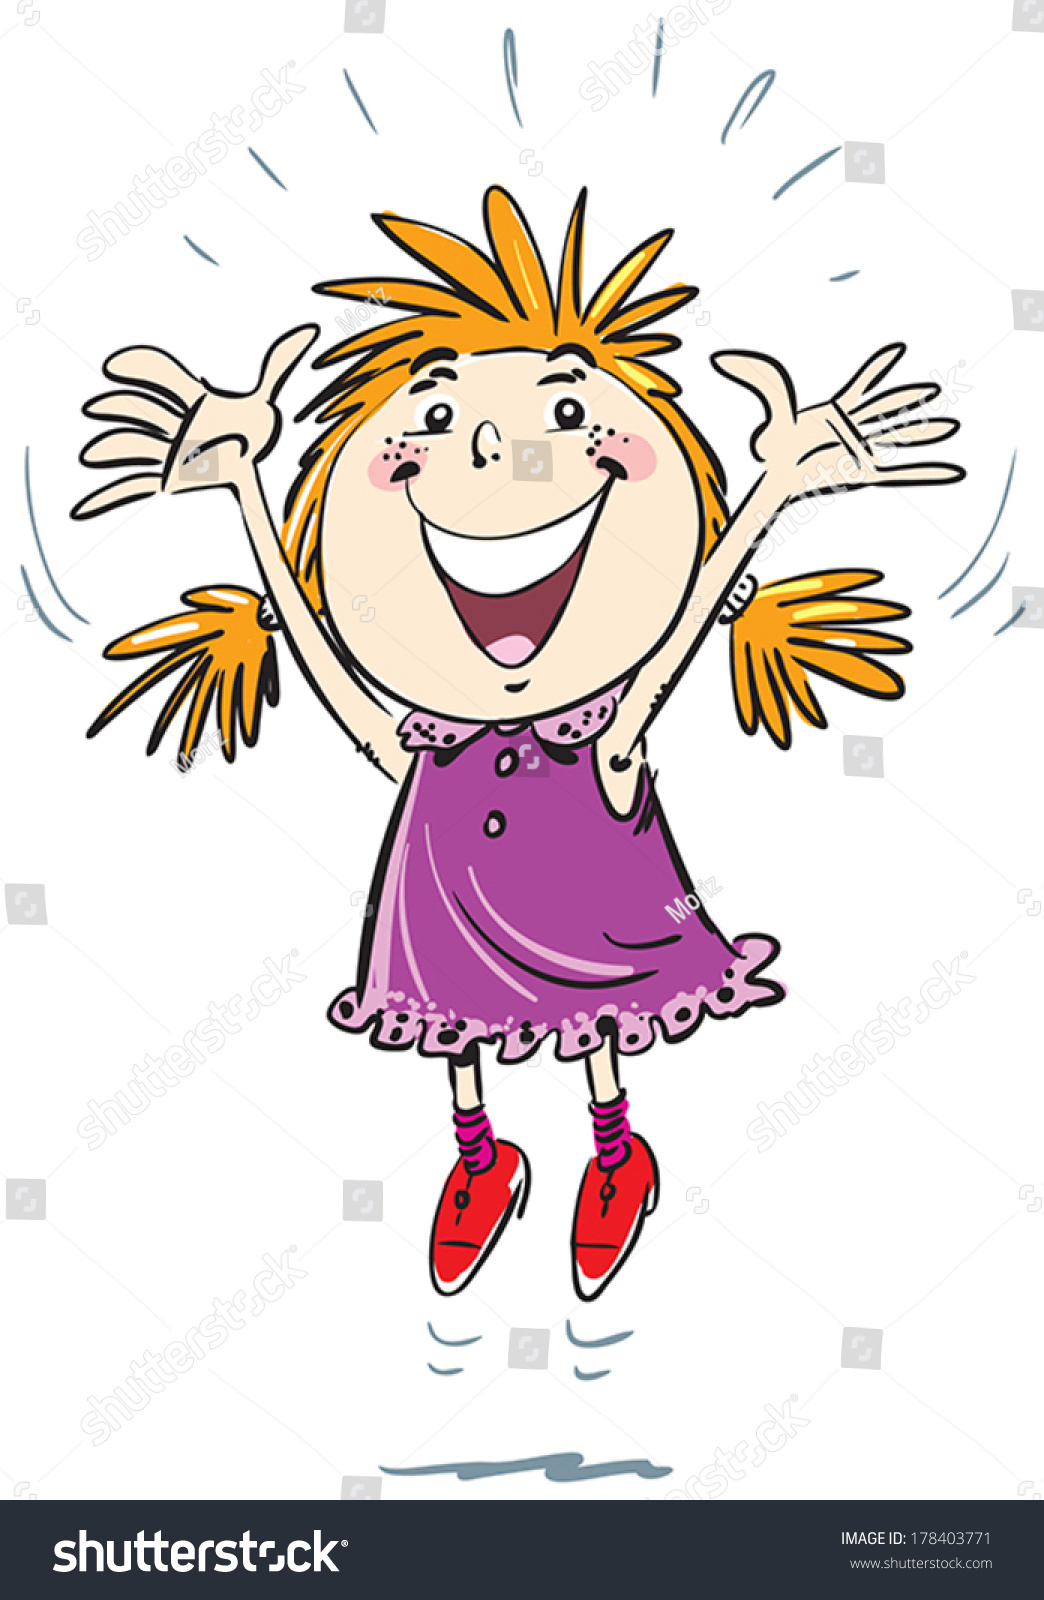 Clipart Jump For Joy & Free Clip Art Images #30367.